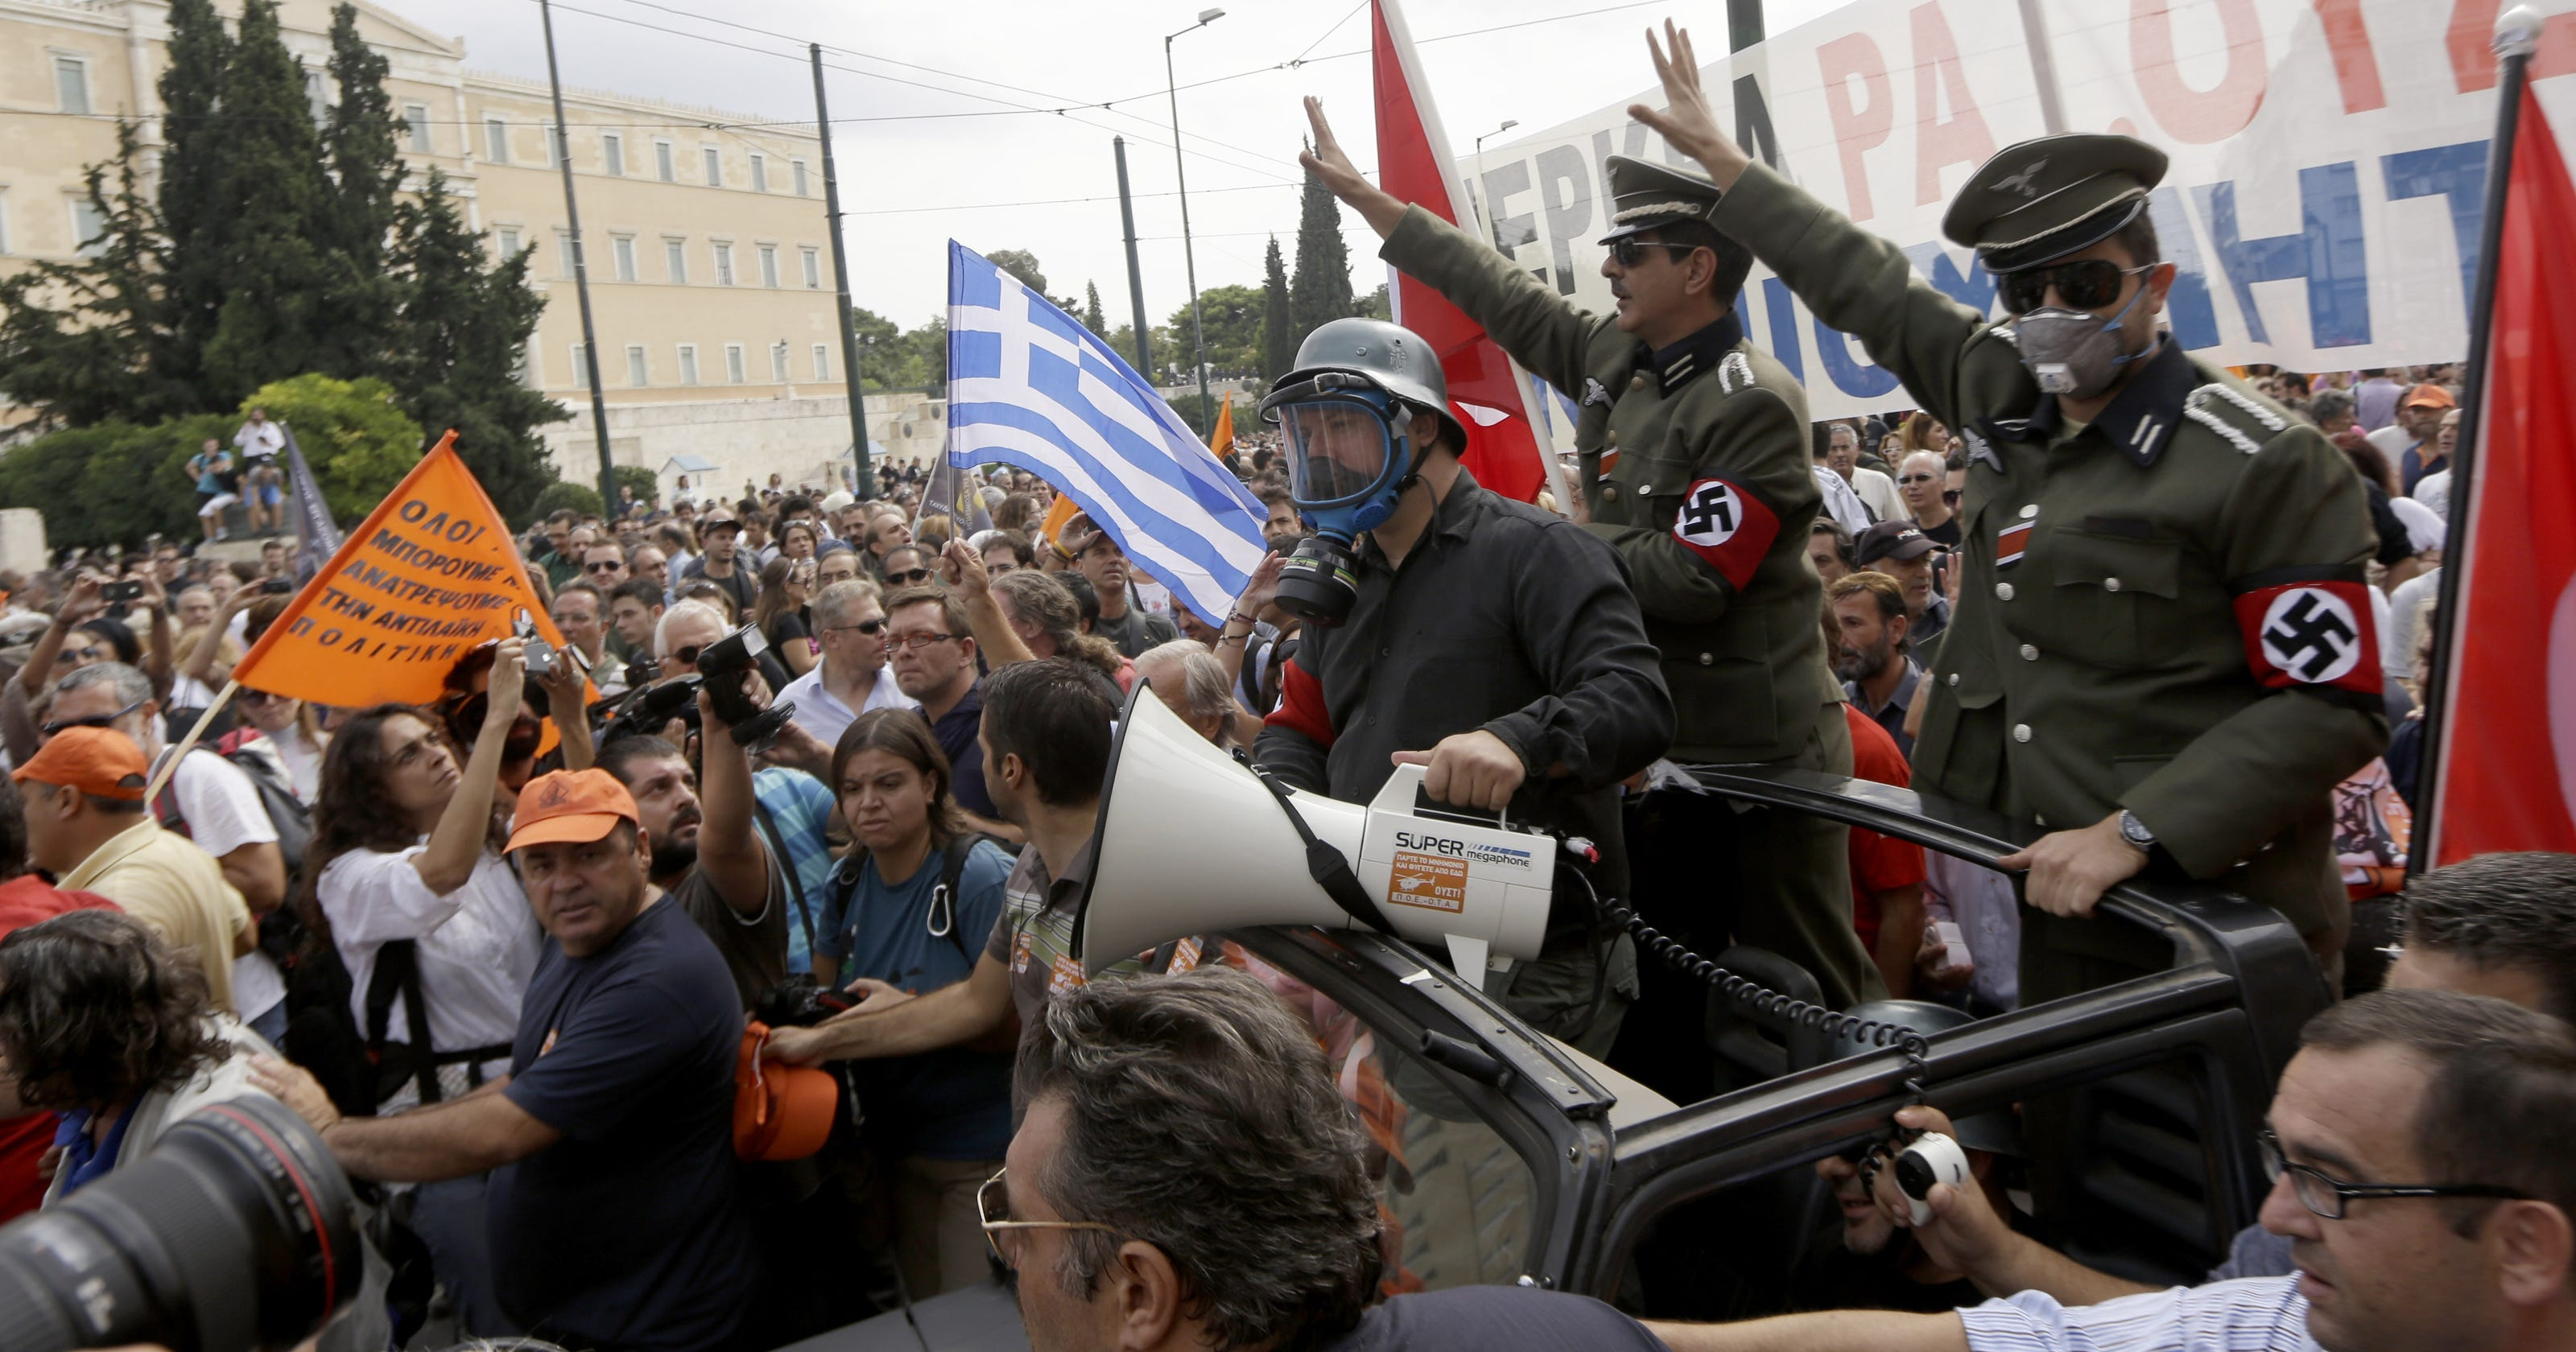 germany s merkel arrives to protests in greece